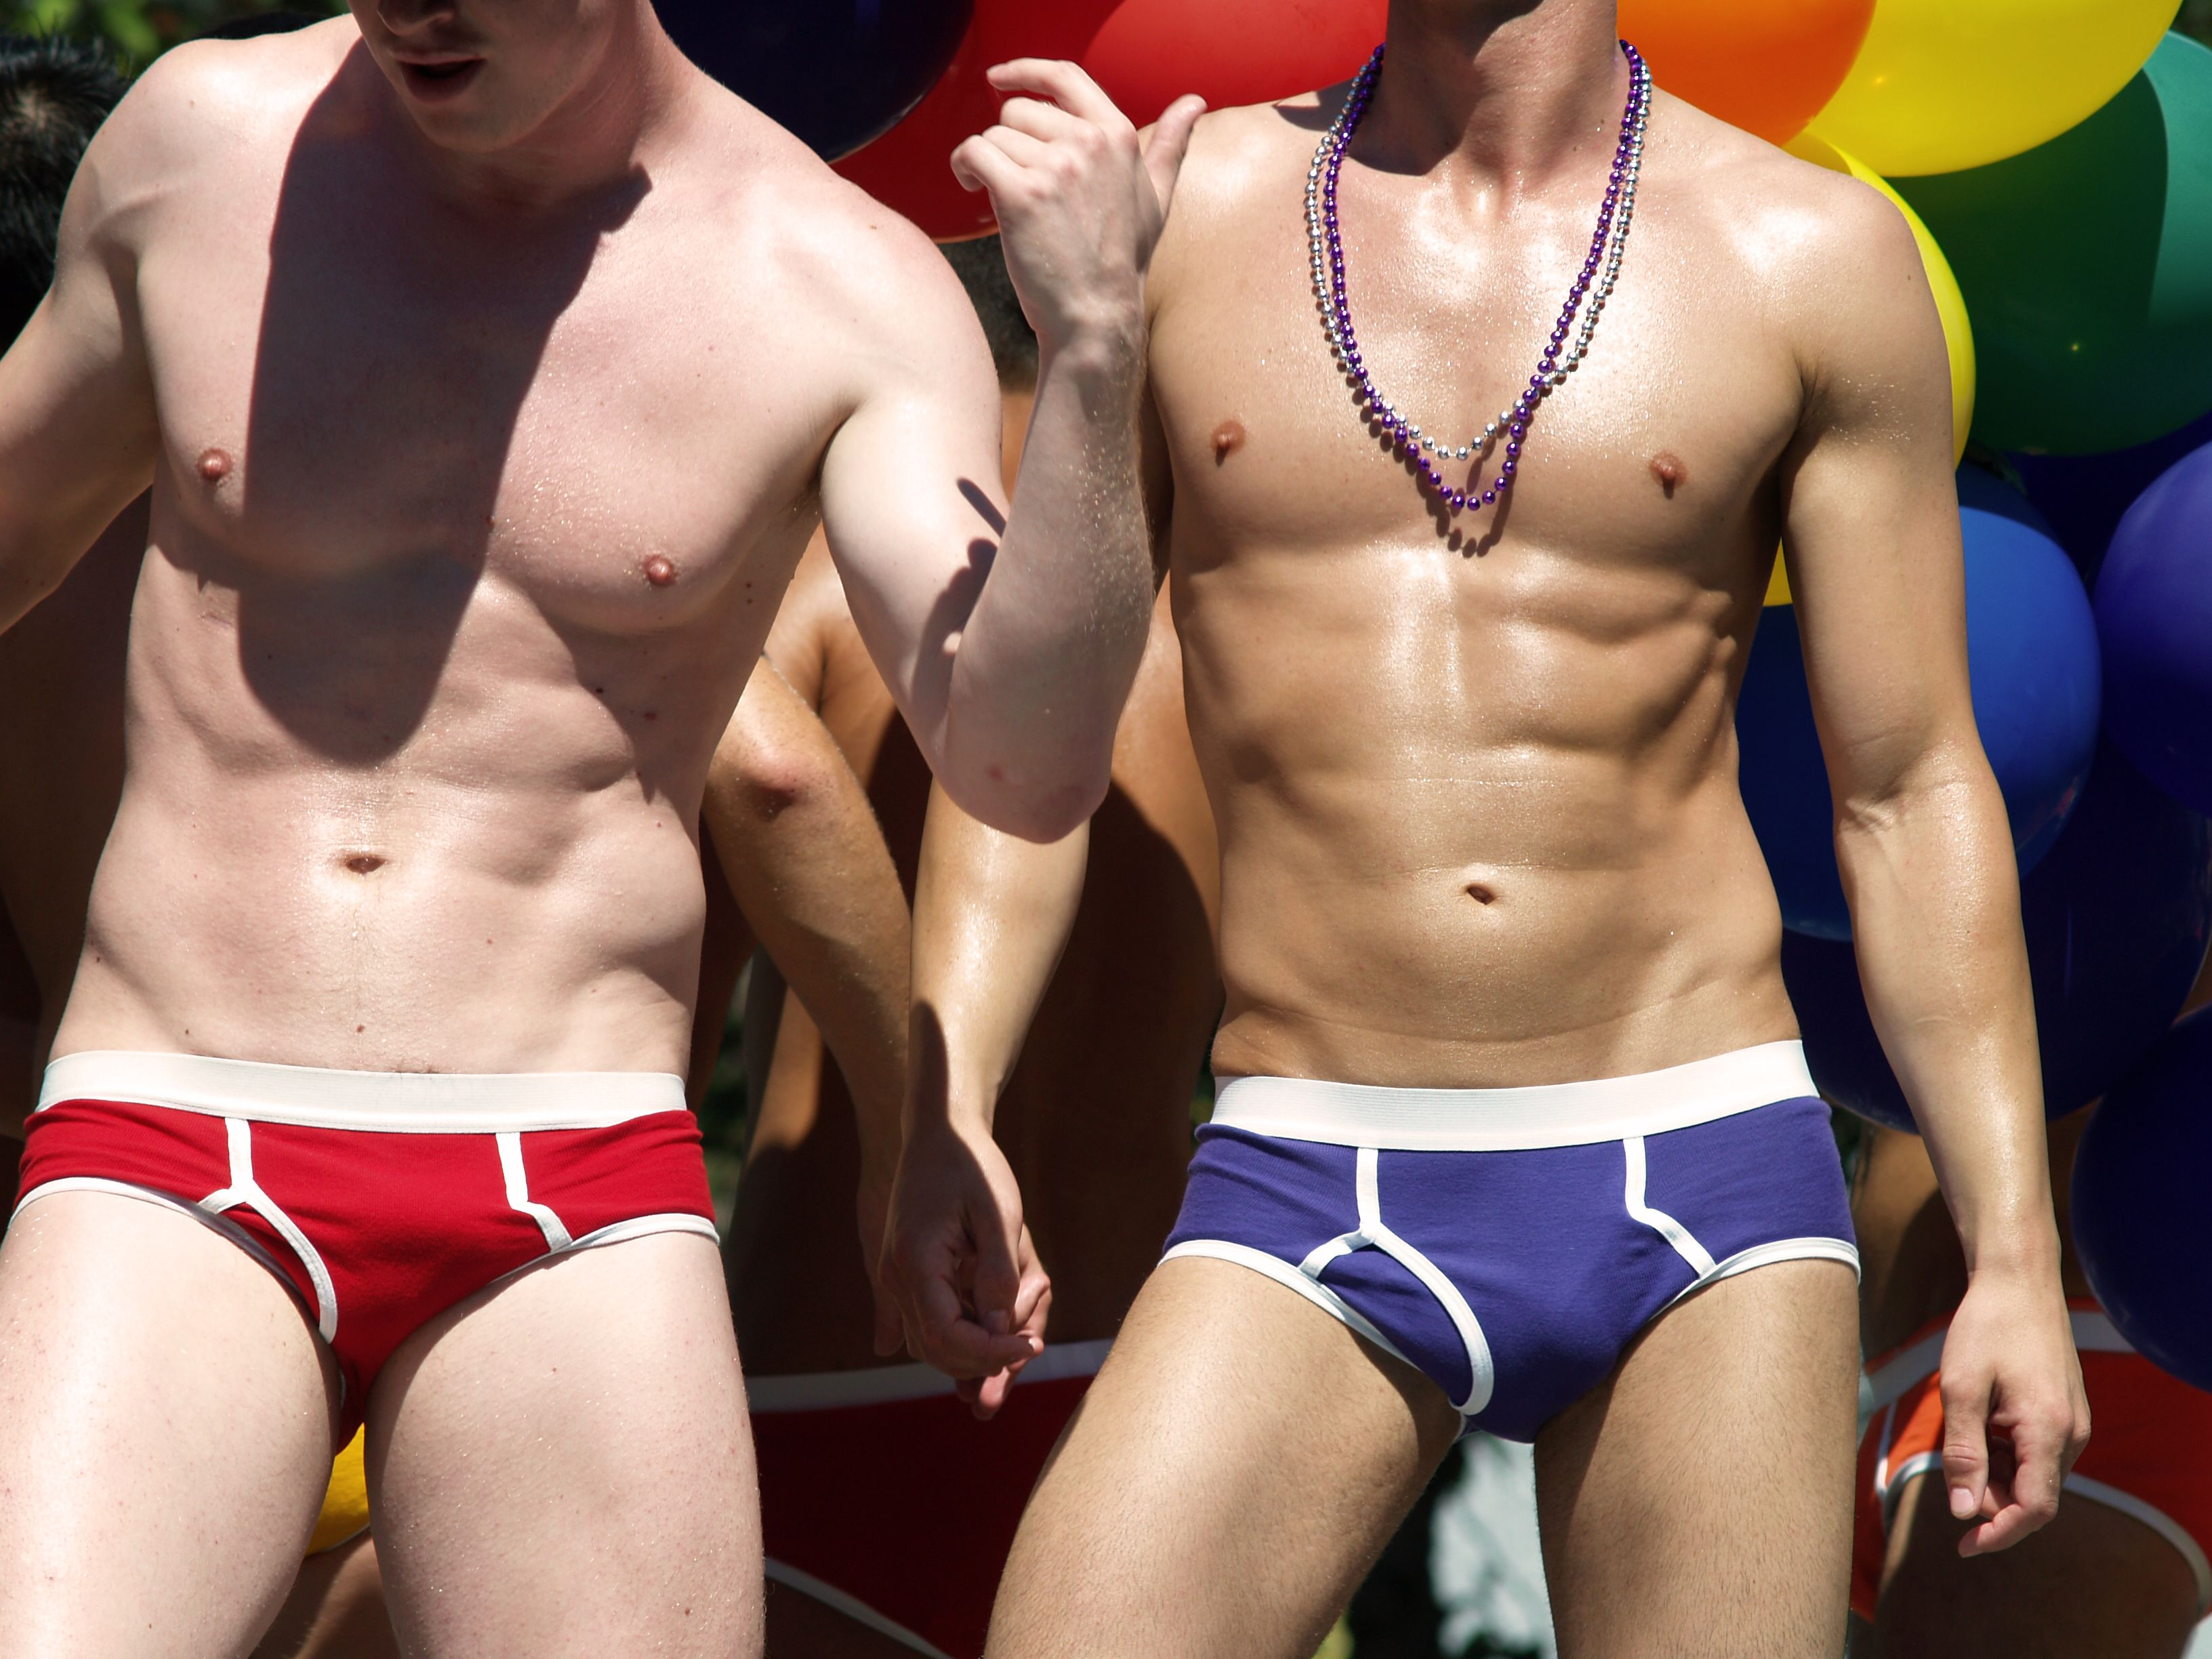 Why Do So Many Gay and Bisexual Men Struggle With Body Image?